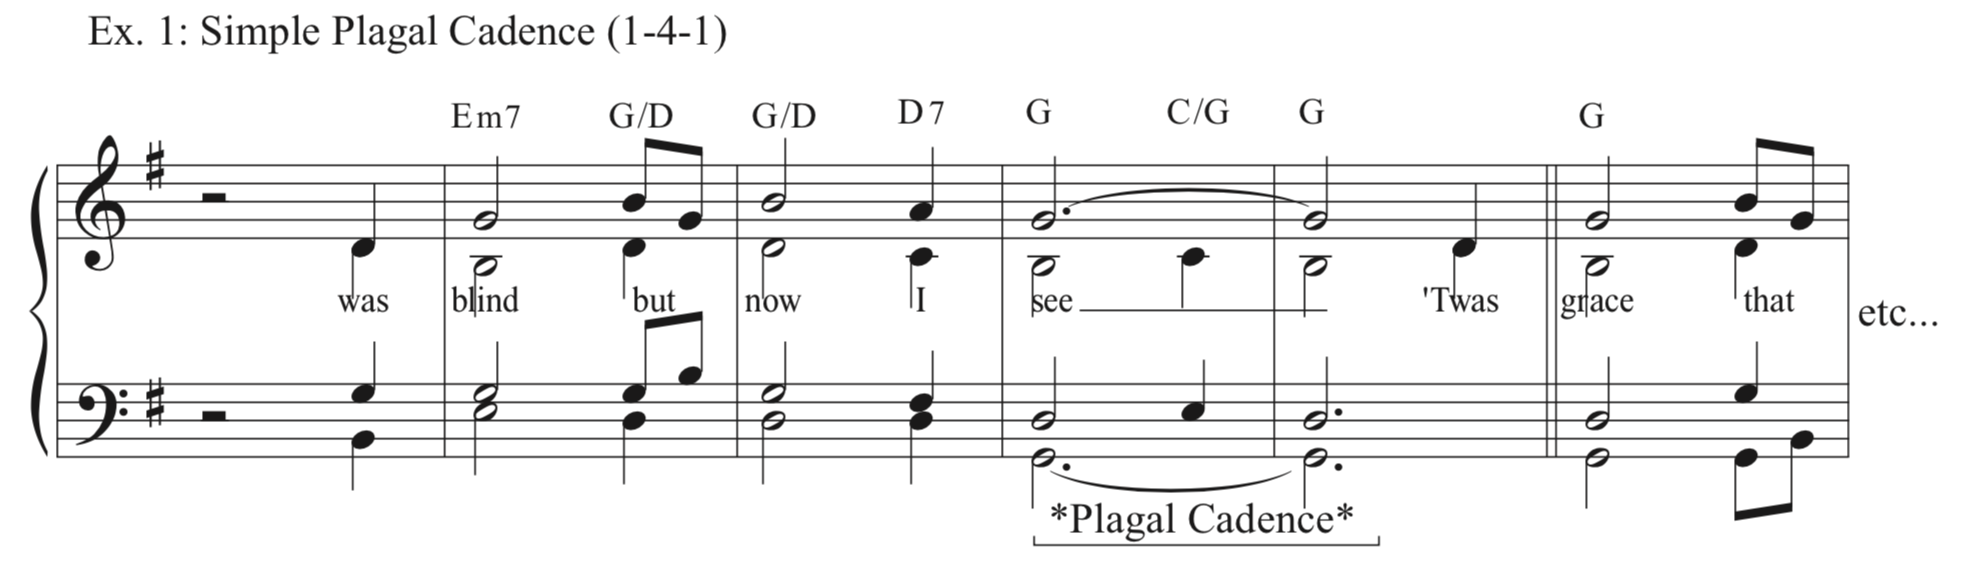 Ex. 1 - Simple Plagal Cadence - Plagal is just a fancy word for a 4-1 cadence. I use this one frequently-maybe too frequently. This simple cadence should be a church musician's best friend, whether you play in traditional, contemporary, or blended worship.